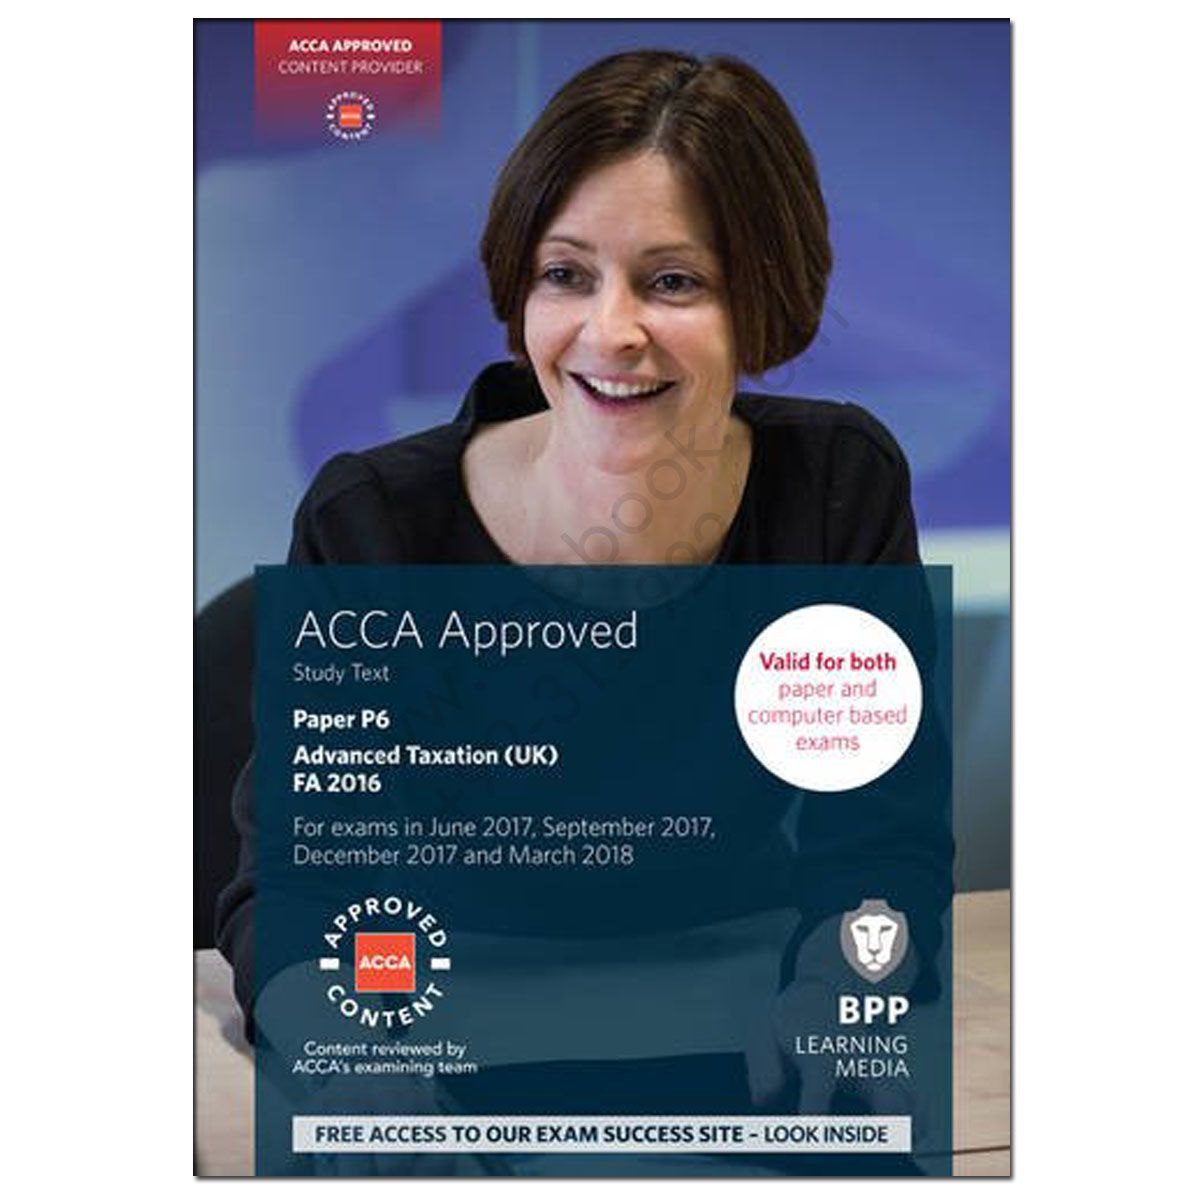 Pin by ACCA Global on ACCA STUDY MATERIAL | Study materials, Free